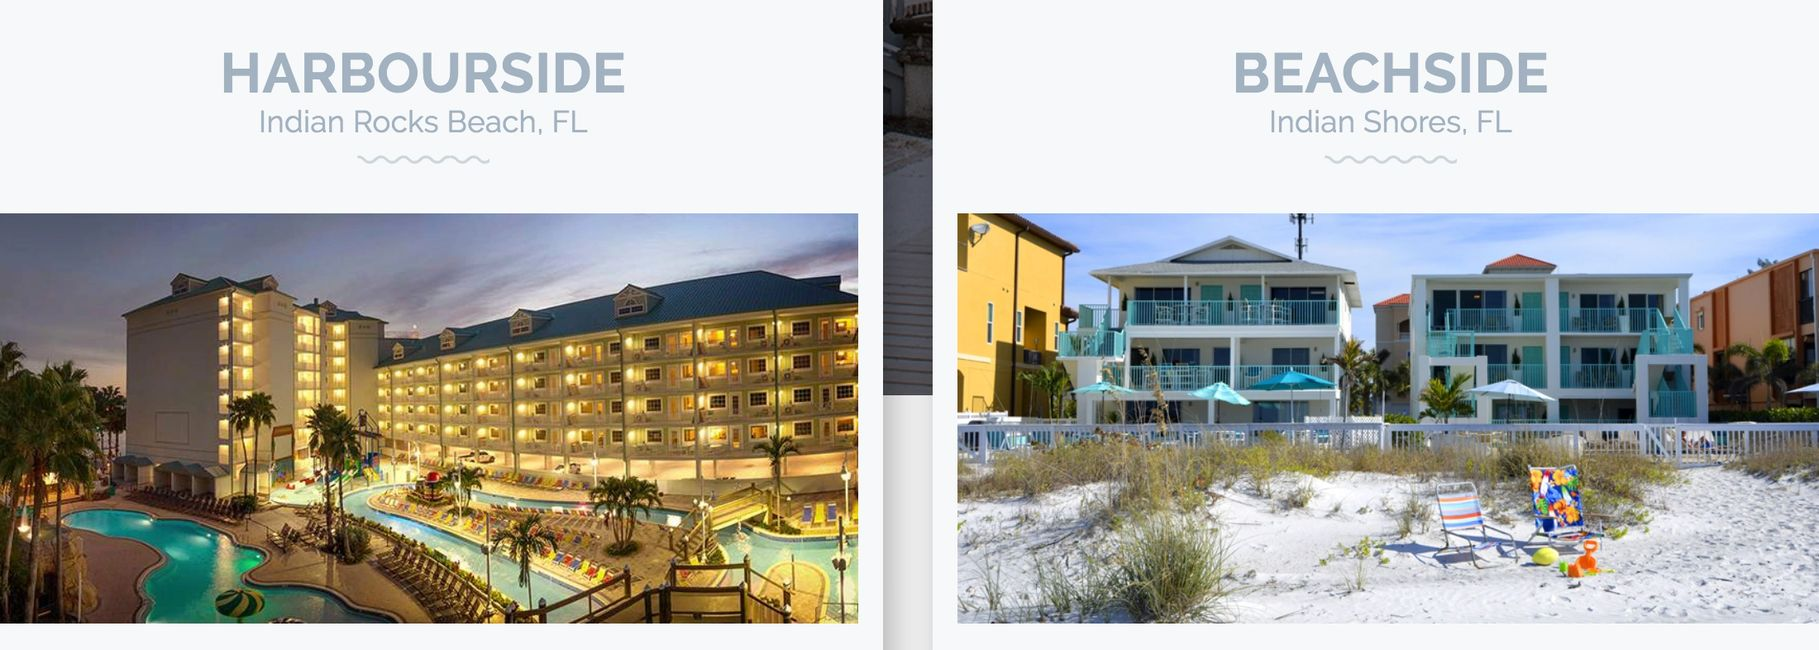 picture of our two hotel properties, one on the beach and one on the intracoastal www.glassbottomtours.com